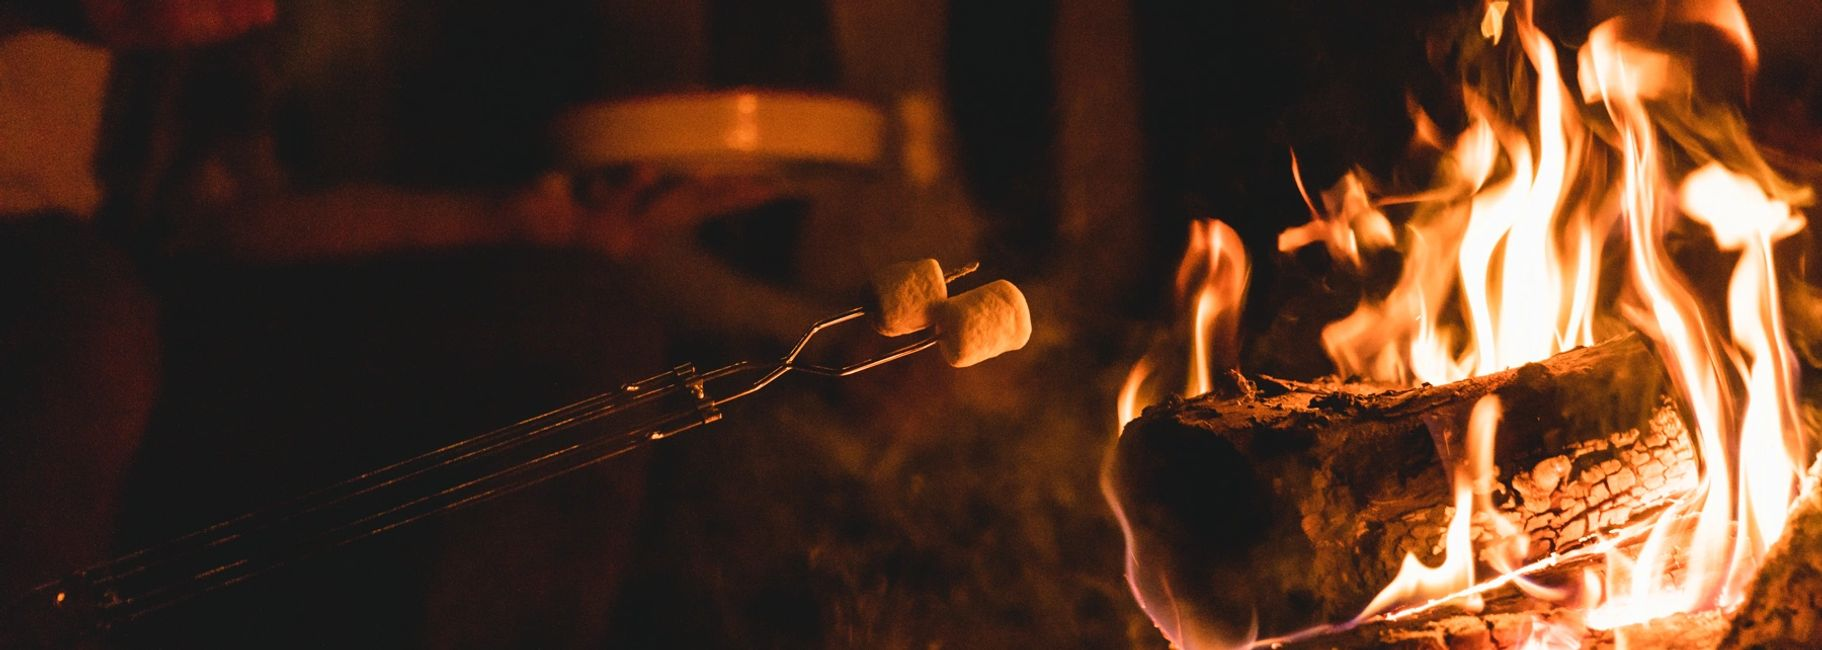 Roasting marshmallows over a campfire.